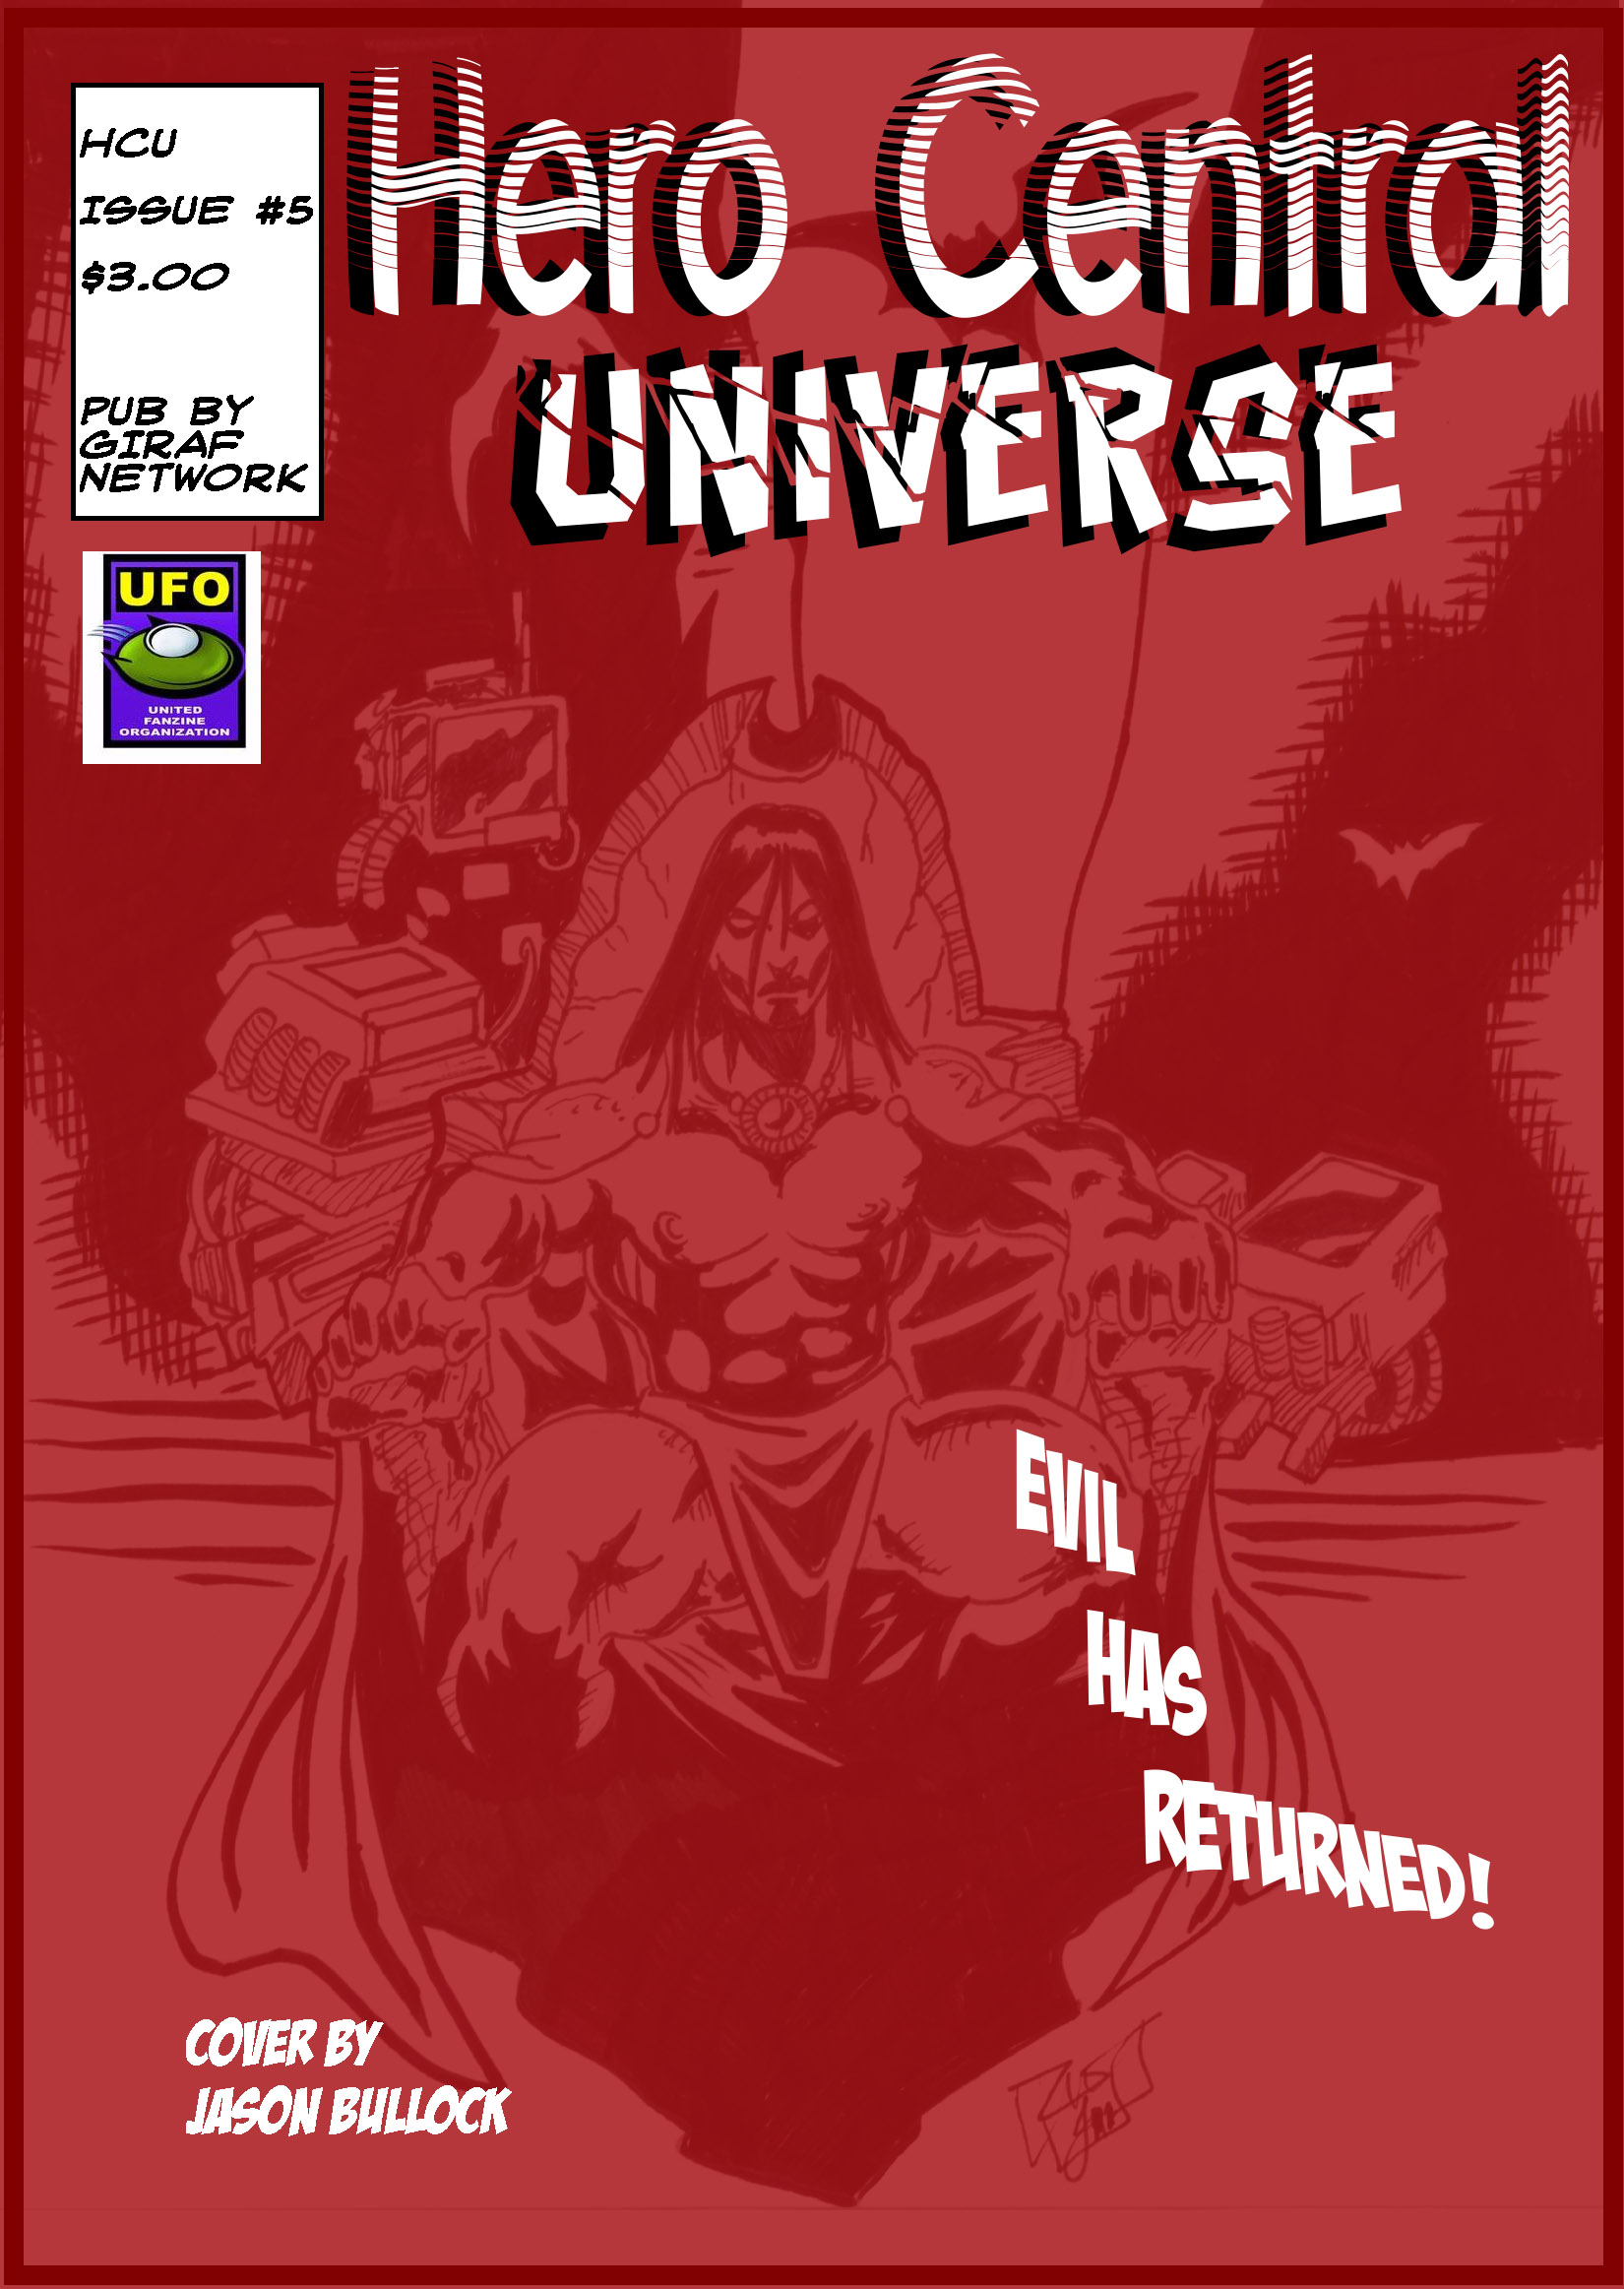 The forces of evil have brought the return of their dark champion. Dracula is here. Good continues to secret out an answer. Available at $3.00 for hard copy, $0.99 for digital copy. Co-published by UFO.